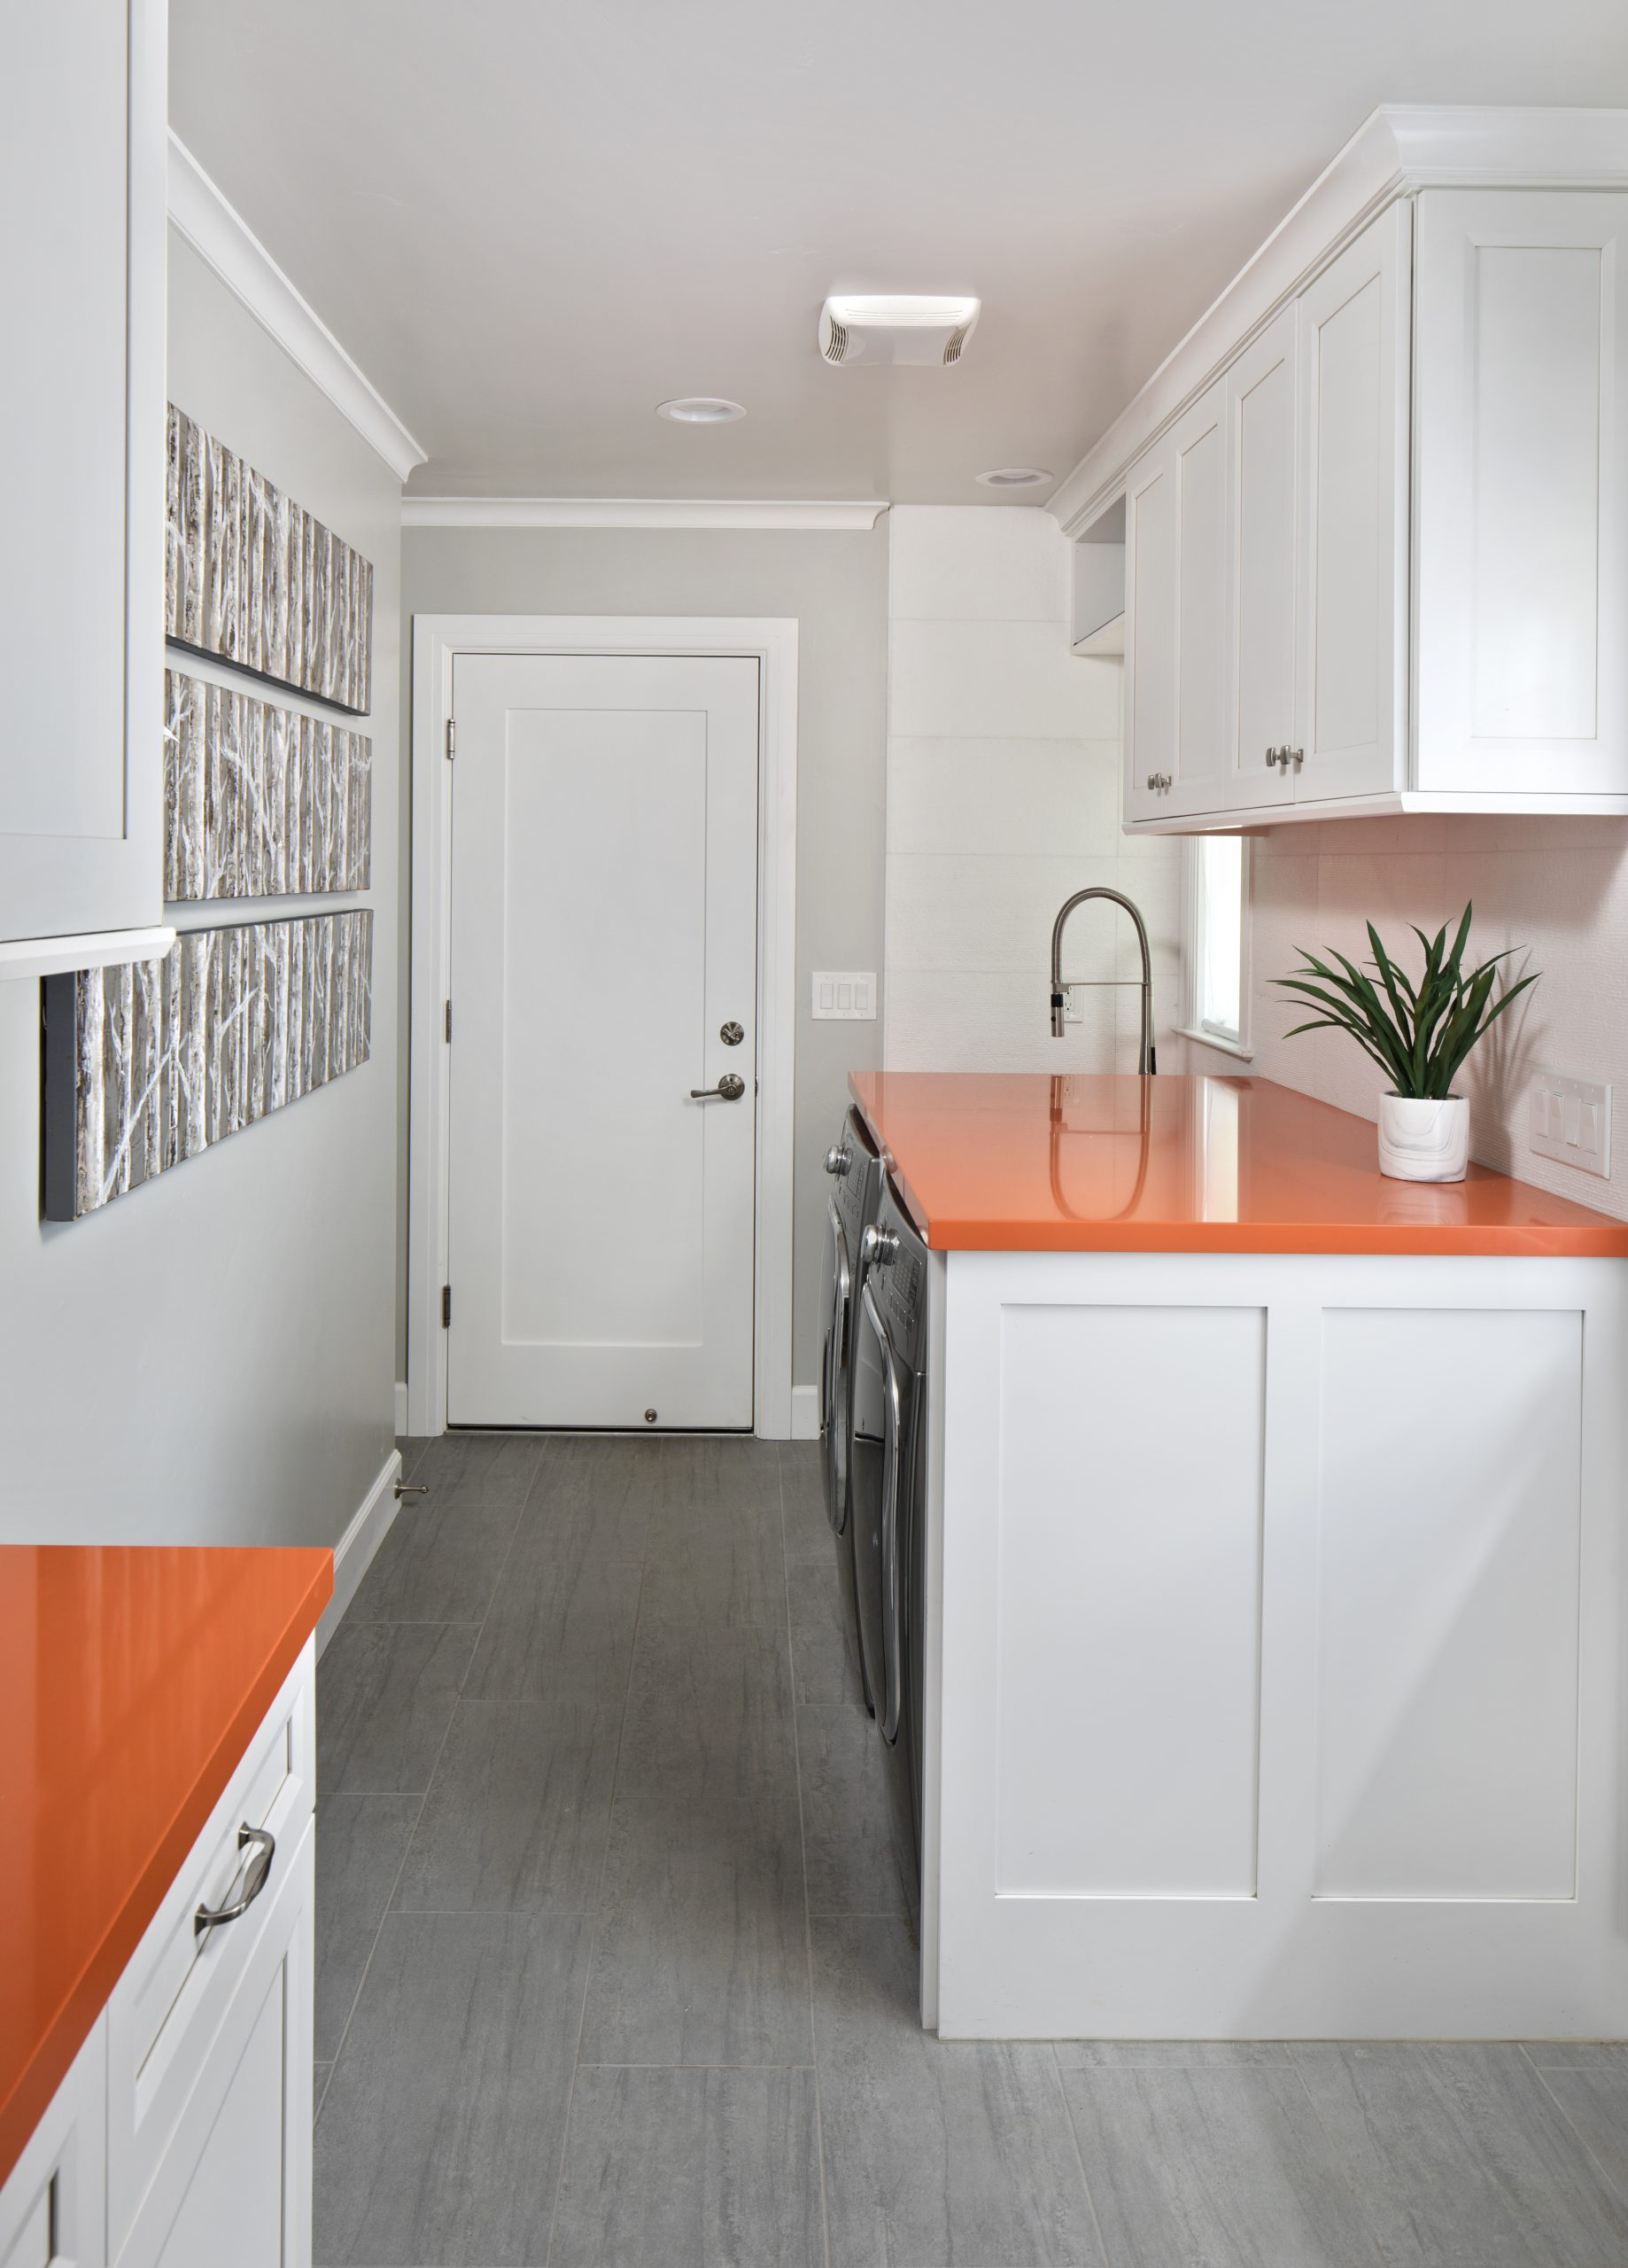 A laundry room with orange counter tops and modern appliances.